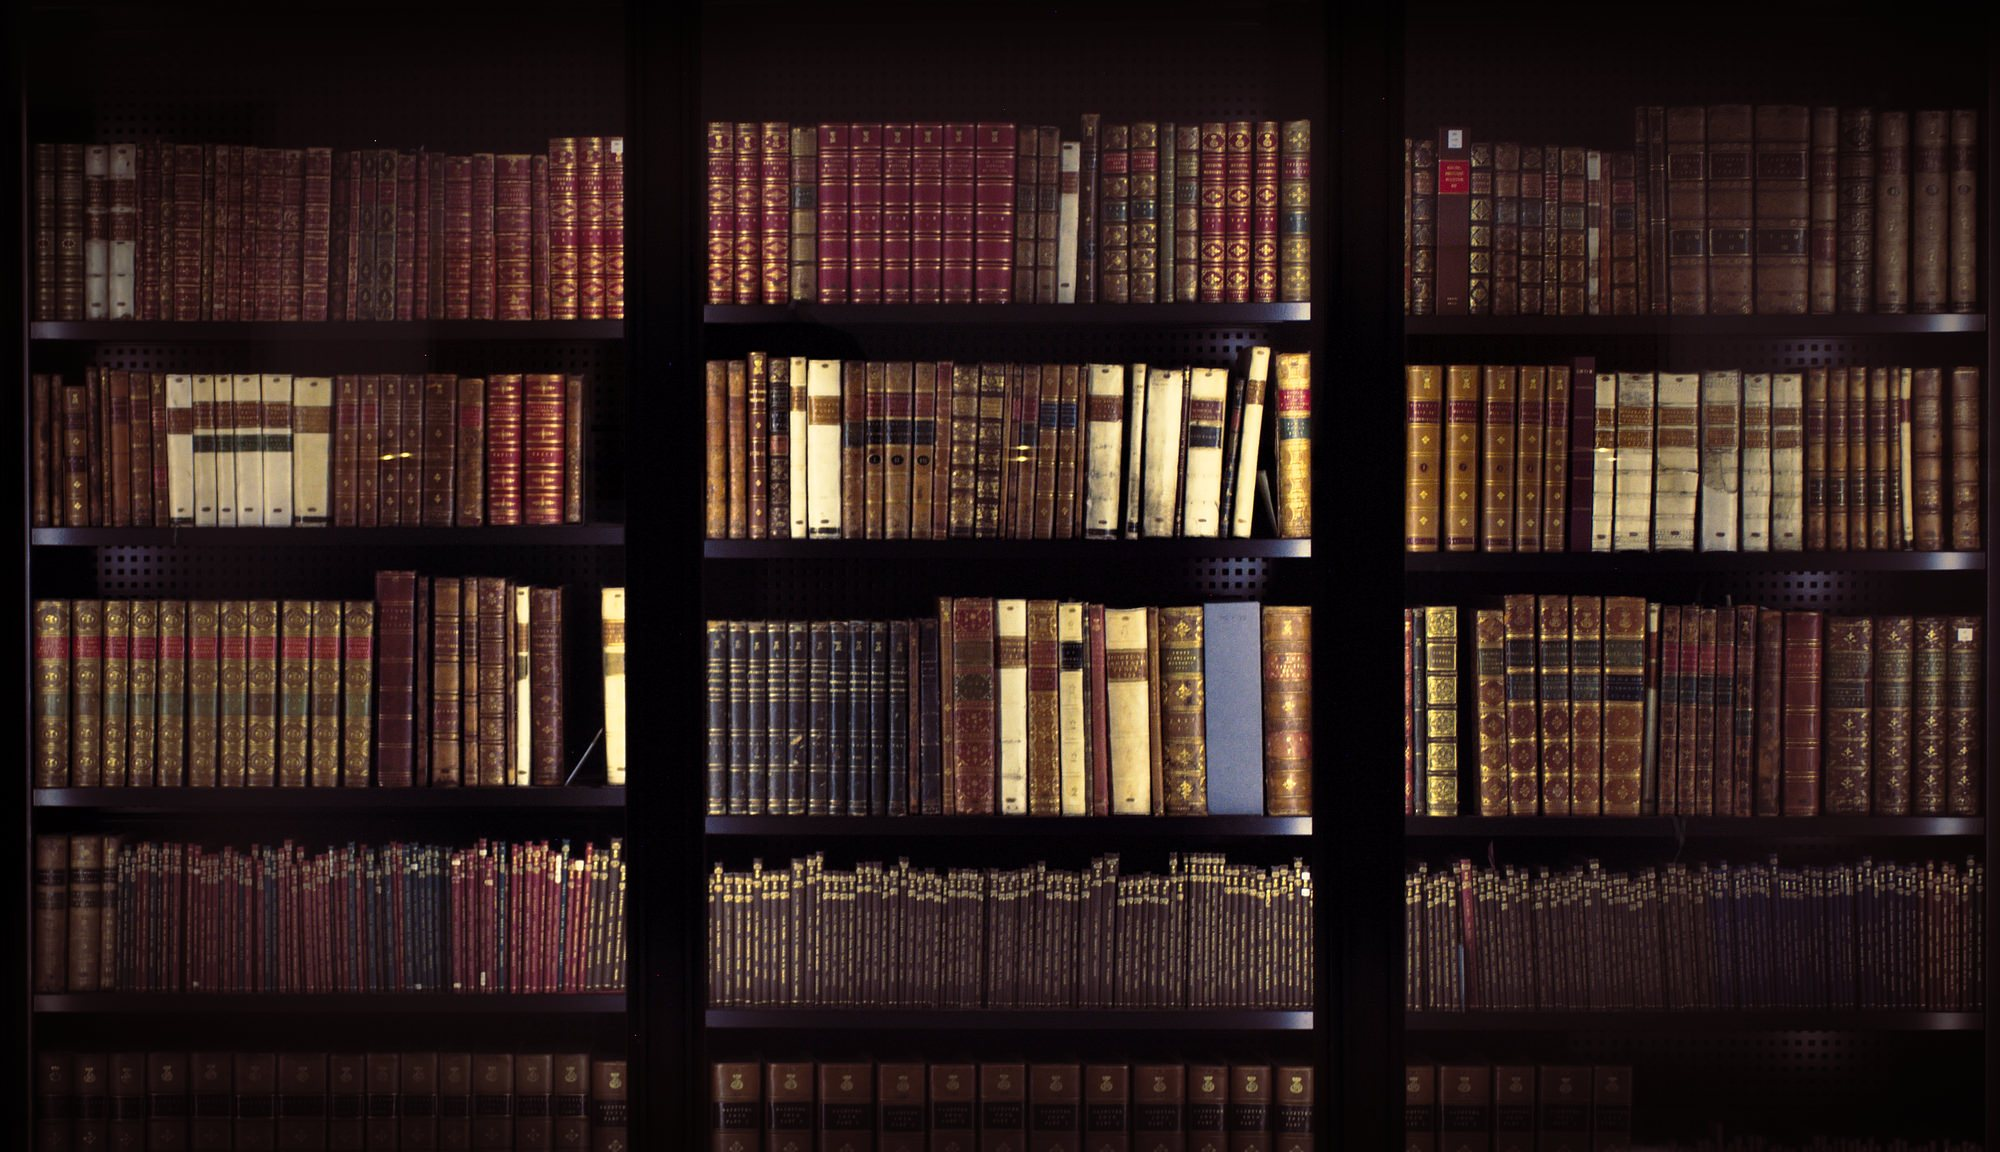 The King's Collection of books, by Gael Varoquoax on Flickr, via CC license